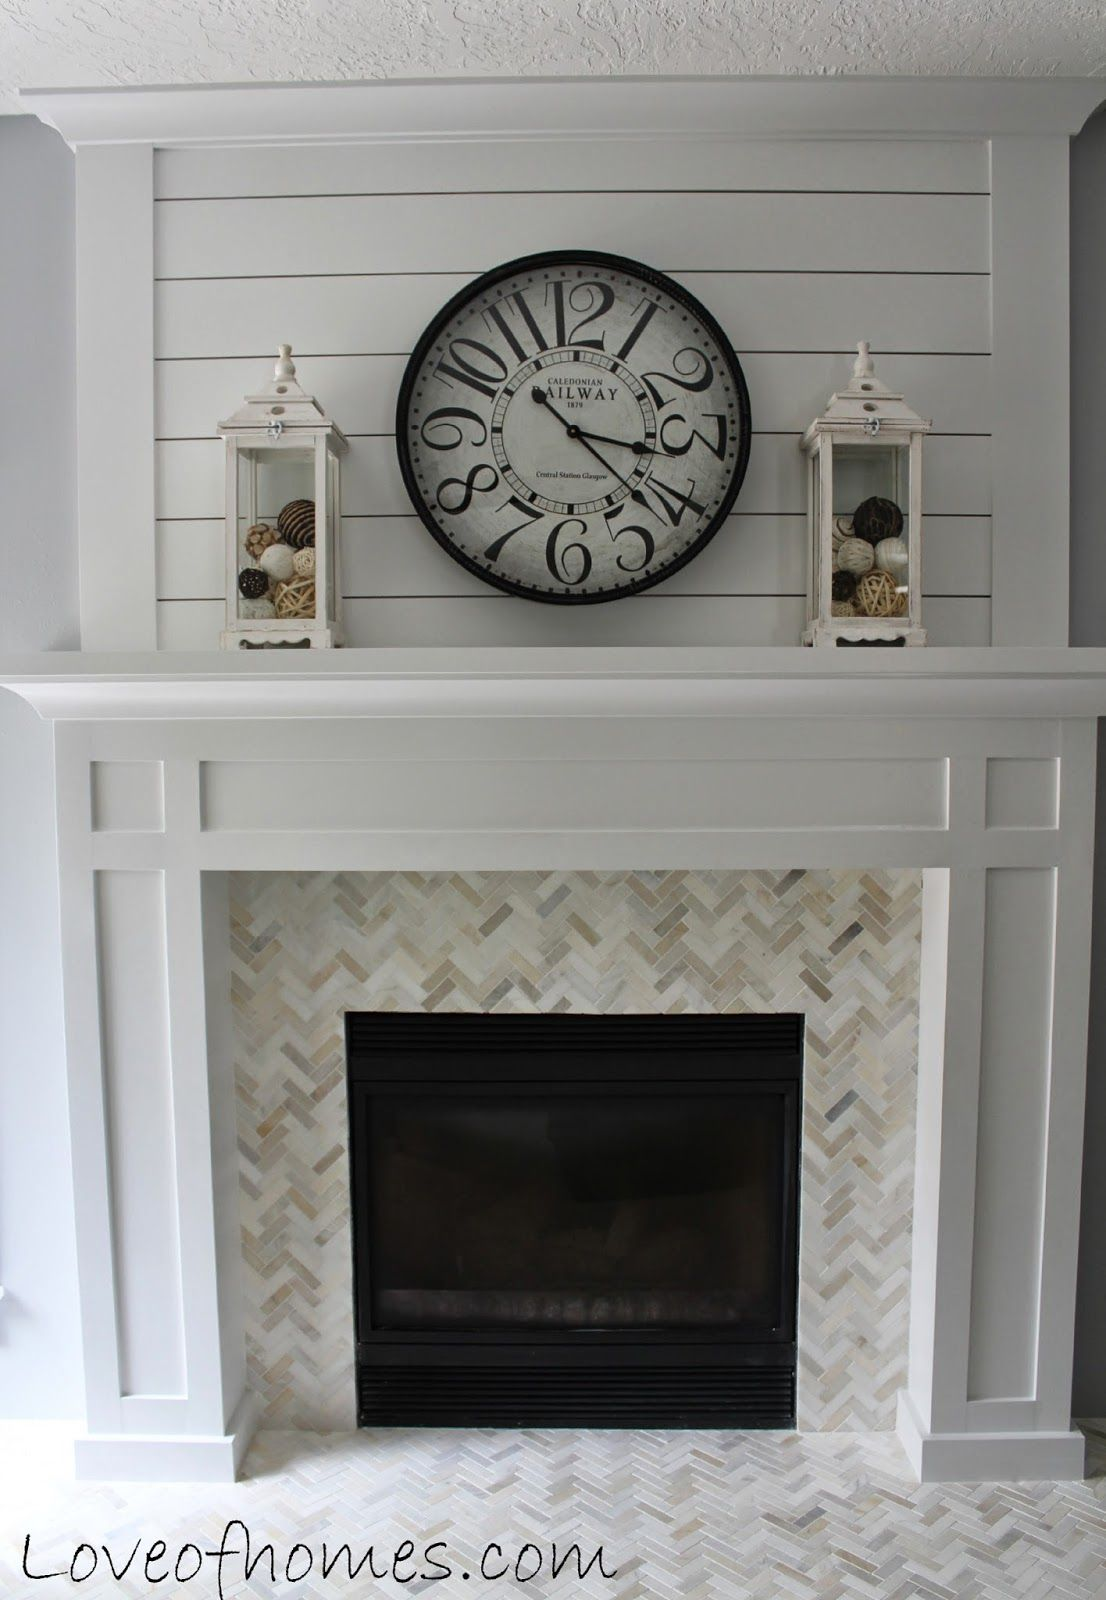 Home Decor Affordable DIY Ideas DIY ideas, Mantle and